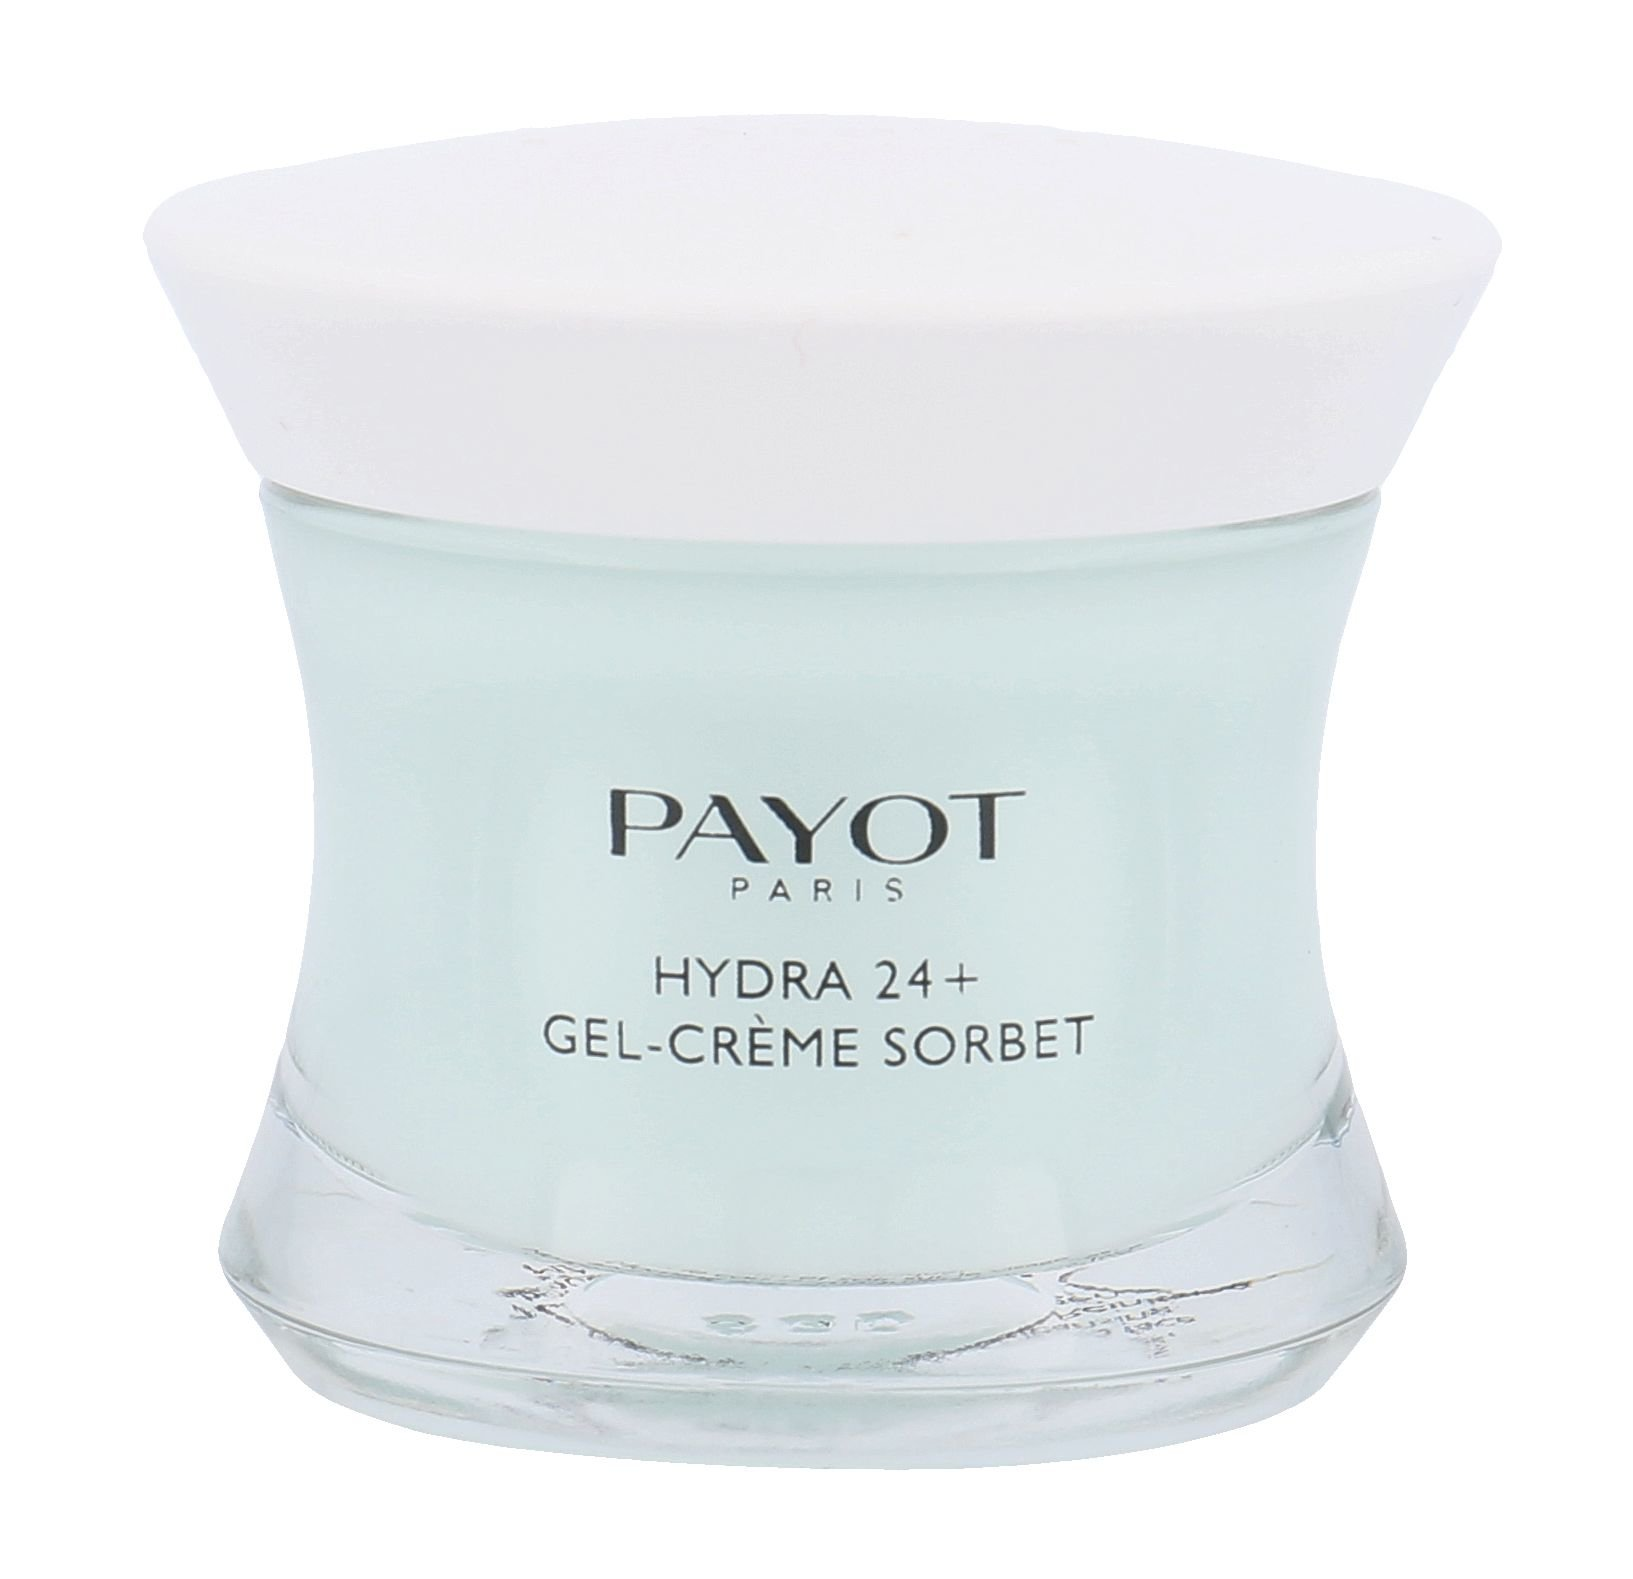 PAYOT Hydra 24+ Cosmetic 50ml  Gel-Creme Sorbet